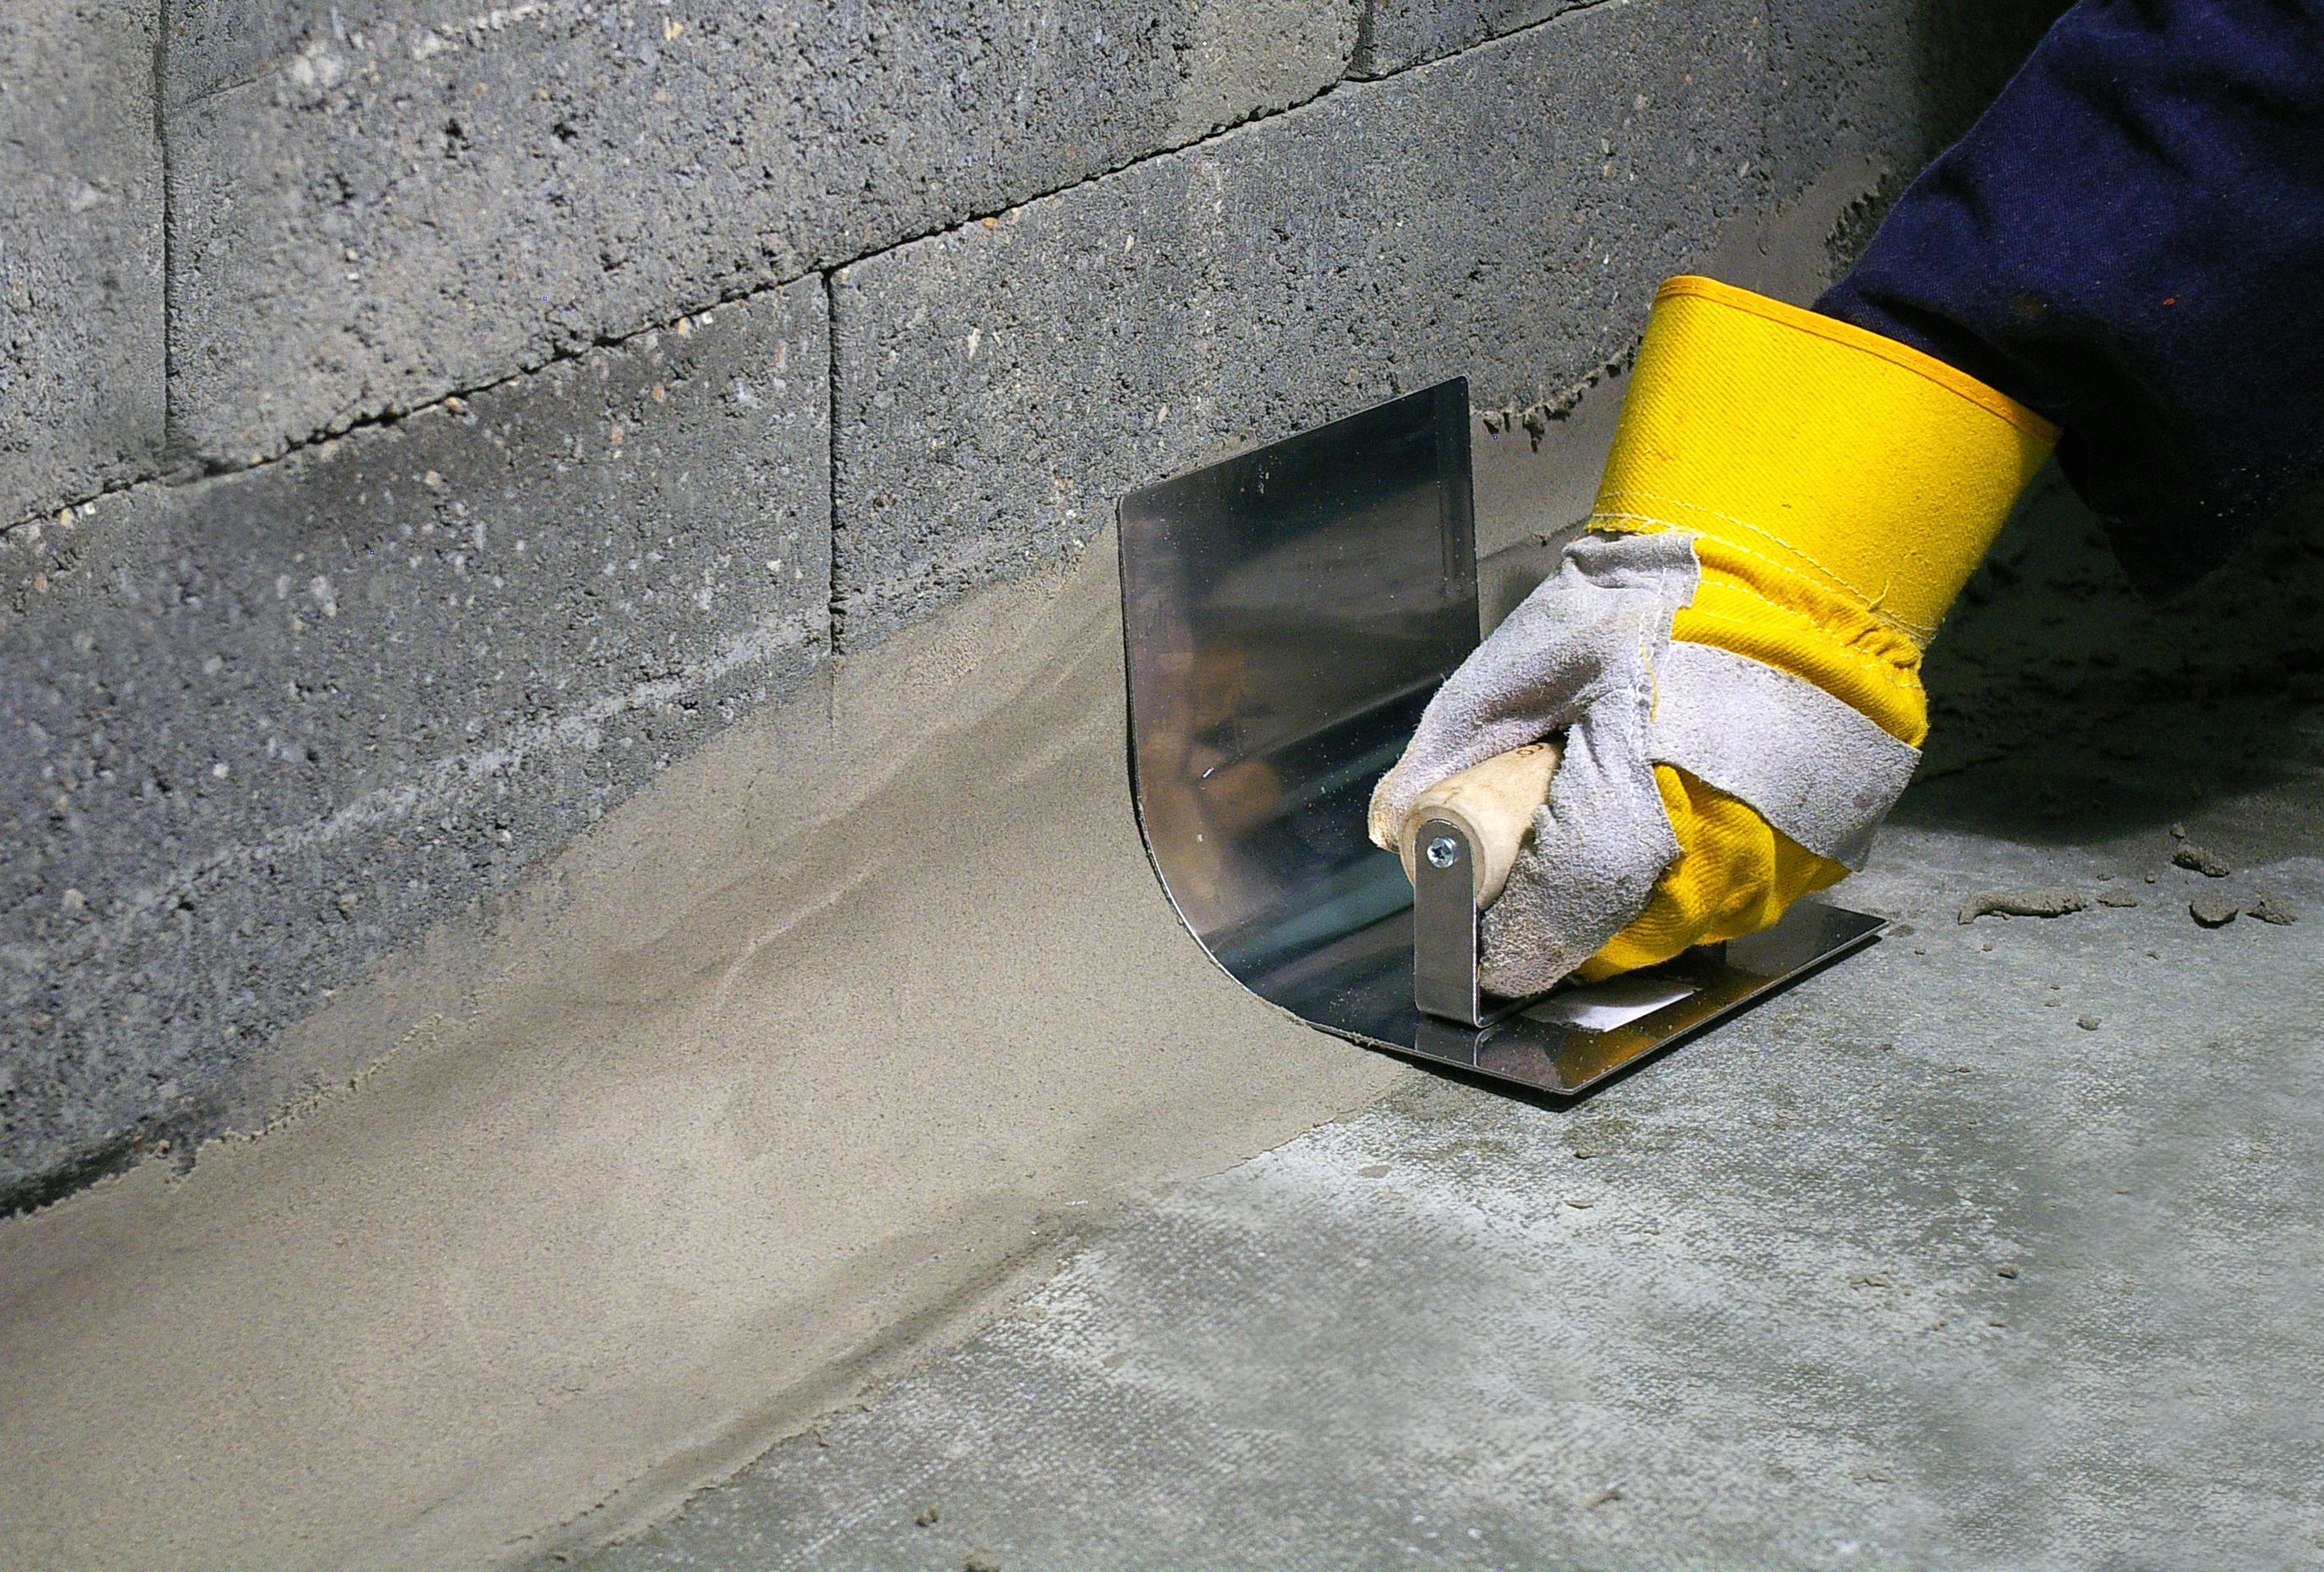 Watco S Coving Mortar Uses Concrex Technology For Tough Chemical And Impact Resistant Skir Concrete Repair Products Concrete Resurfacing Concrete Floor Repair